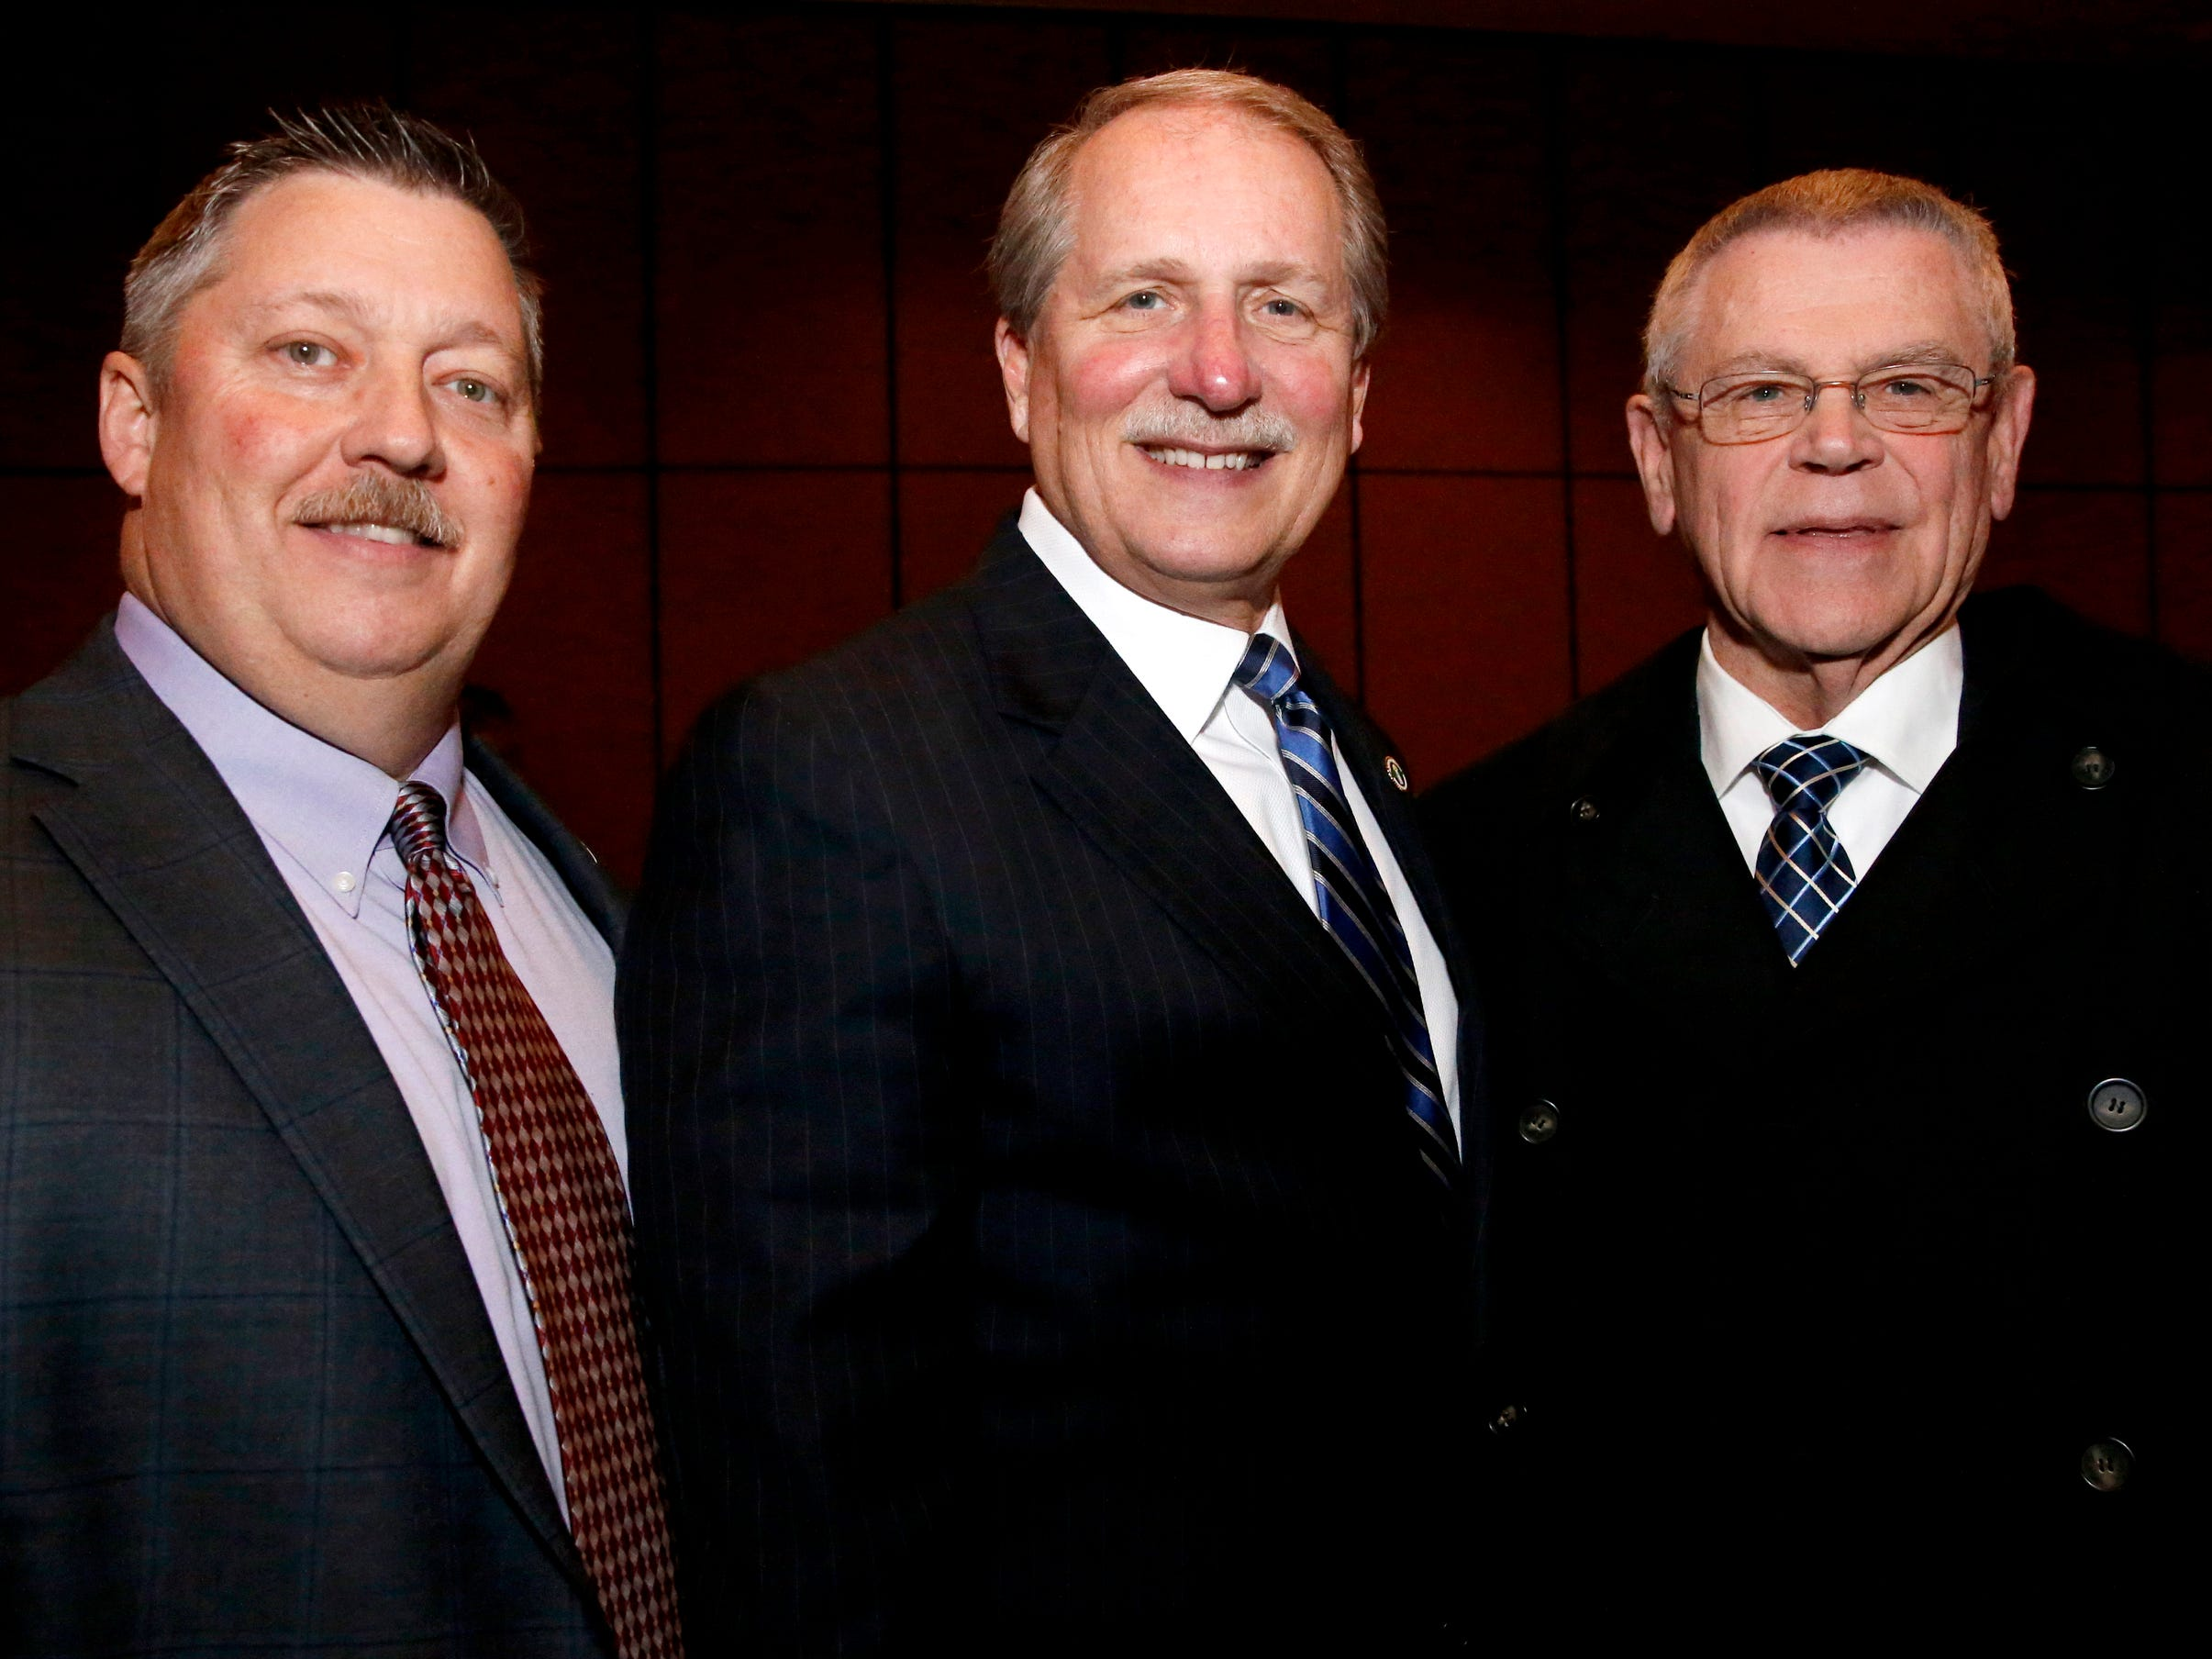 Deputy County Mayor Steve Sandlin, left, Rutherford County Mayor Bill Ketron, center and Sheriff Mike Fitzhugh, right  at Business at Its Best held on Wednesday, Jan. 31, 2019 at Embassy Suites.